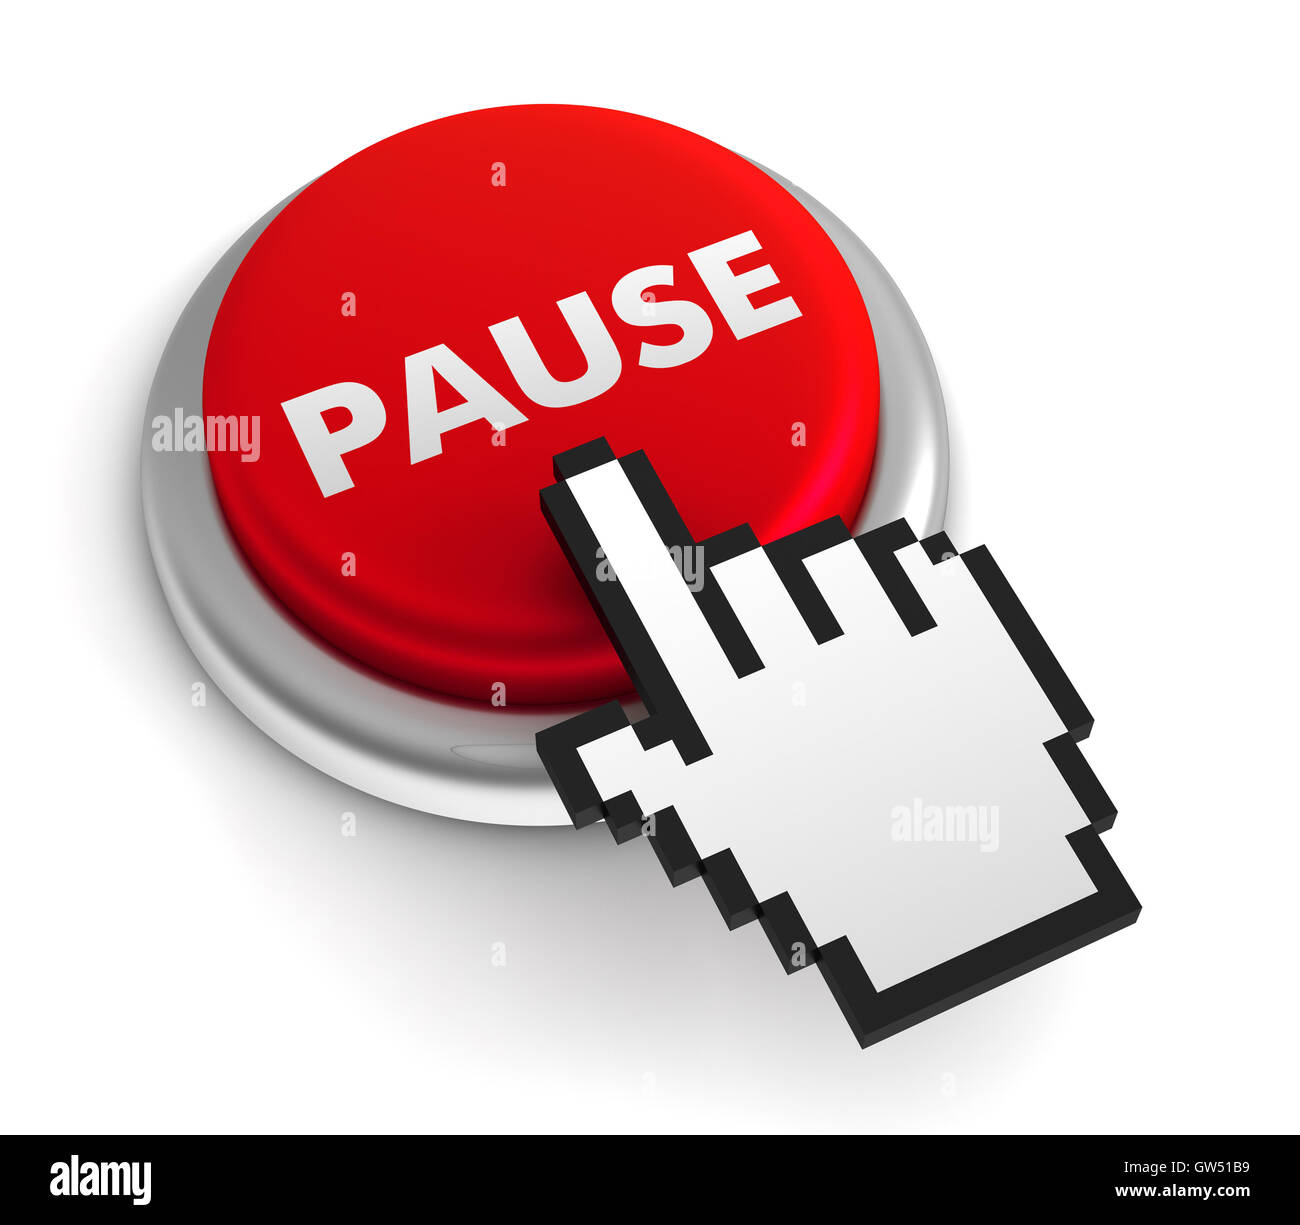 pause keyboard concept  3d illustration - Stock Image